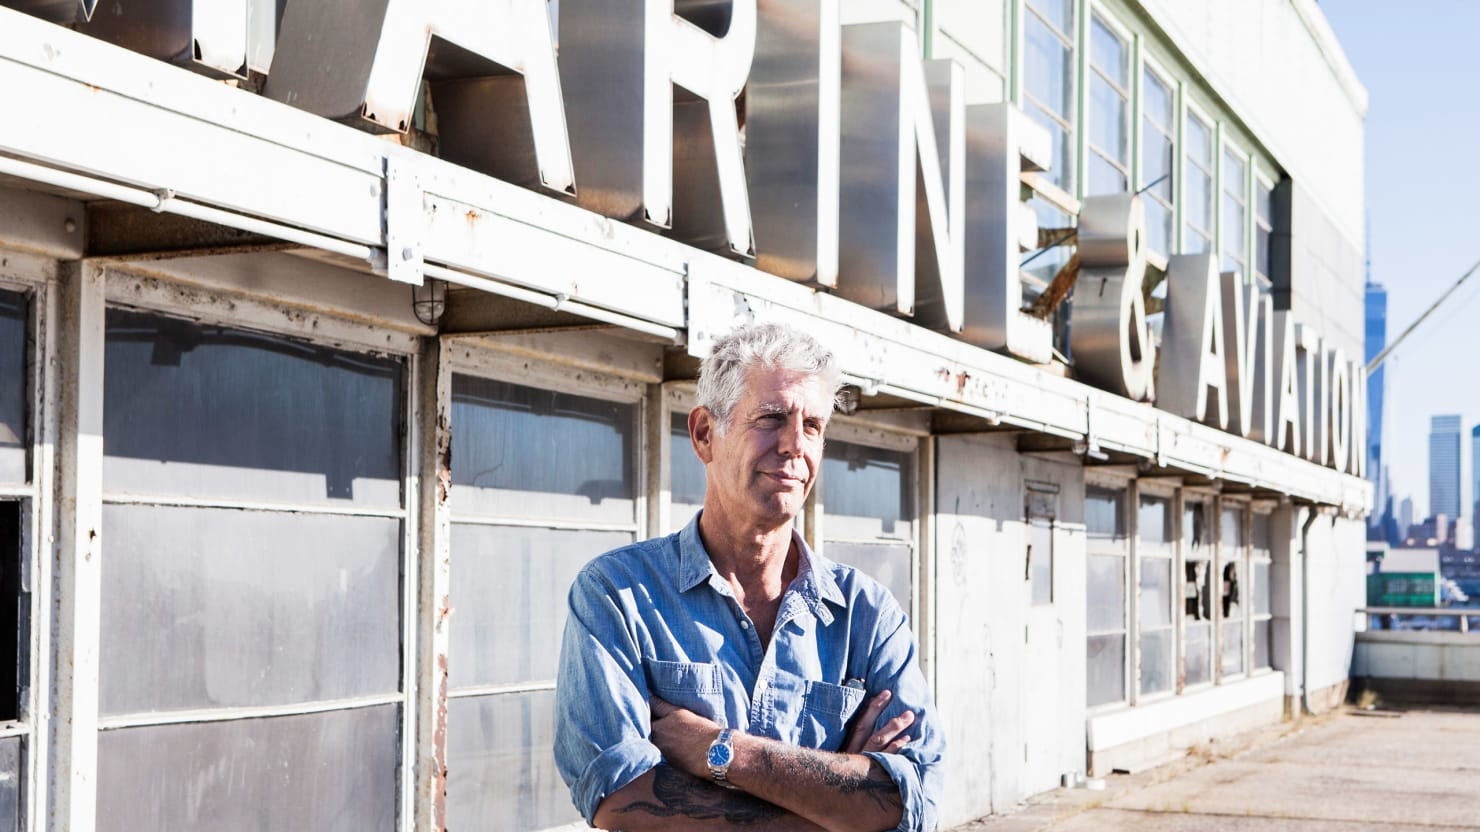 Anthony Bourdain's Top 5 New York City Restaurants—and Why the Food Network Is a 'Petri Dish'